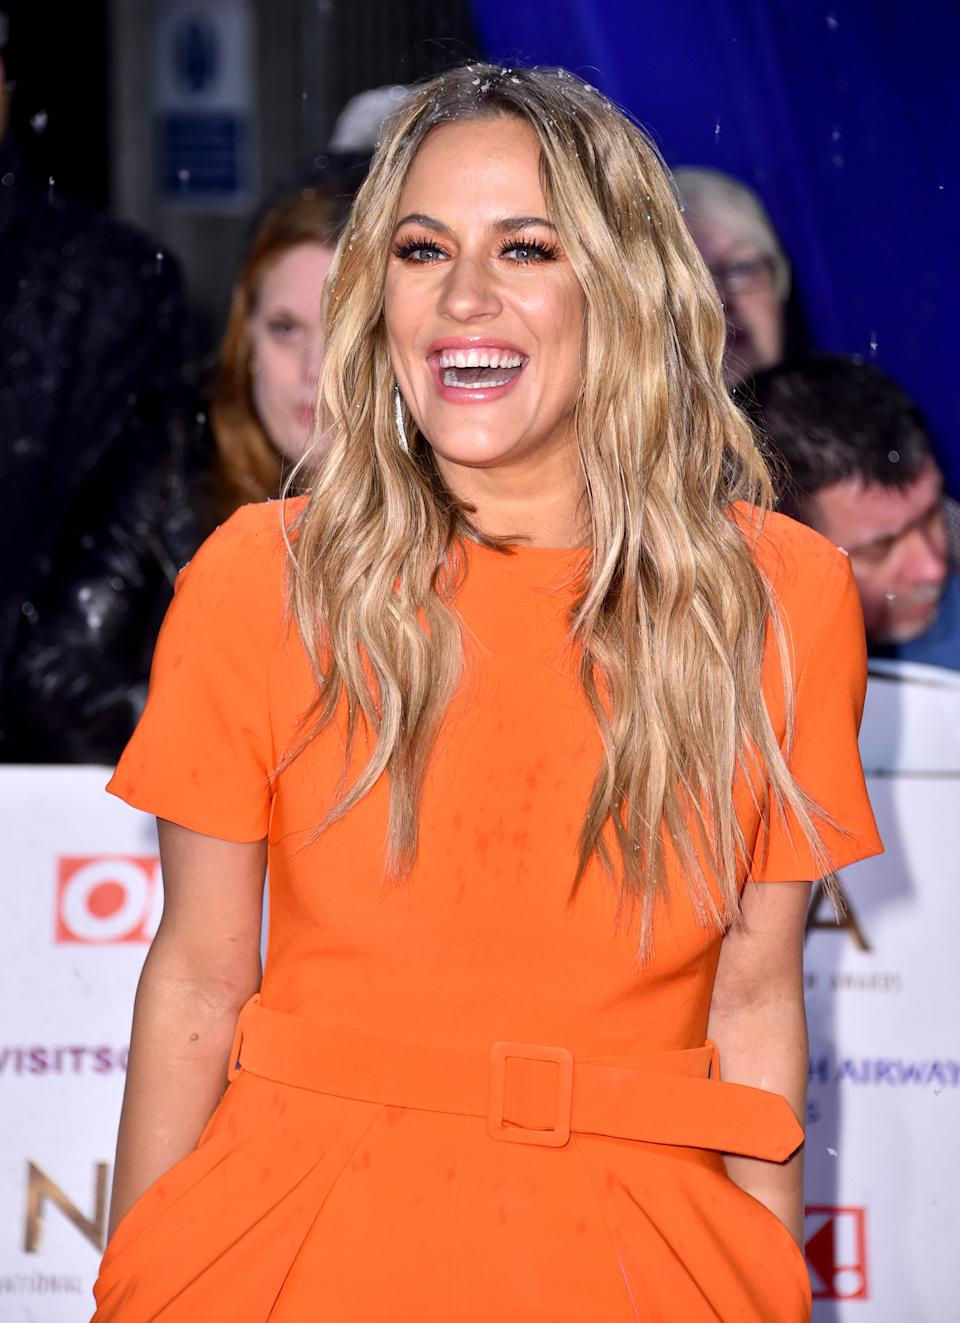 File photo dated 22/1/2019 of TV presenter Caroline Flack who has died, her family said in a statement.